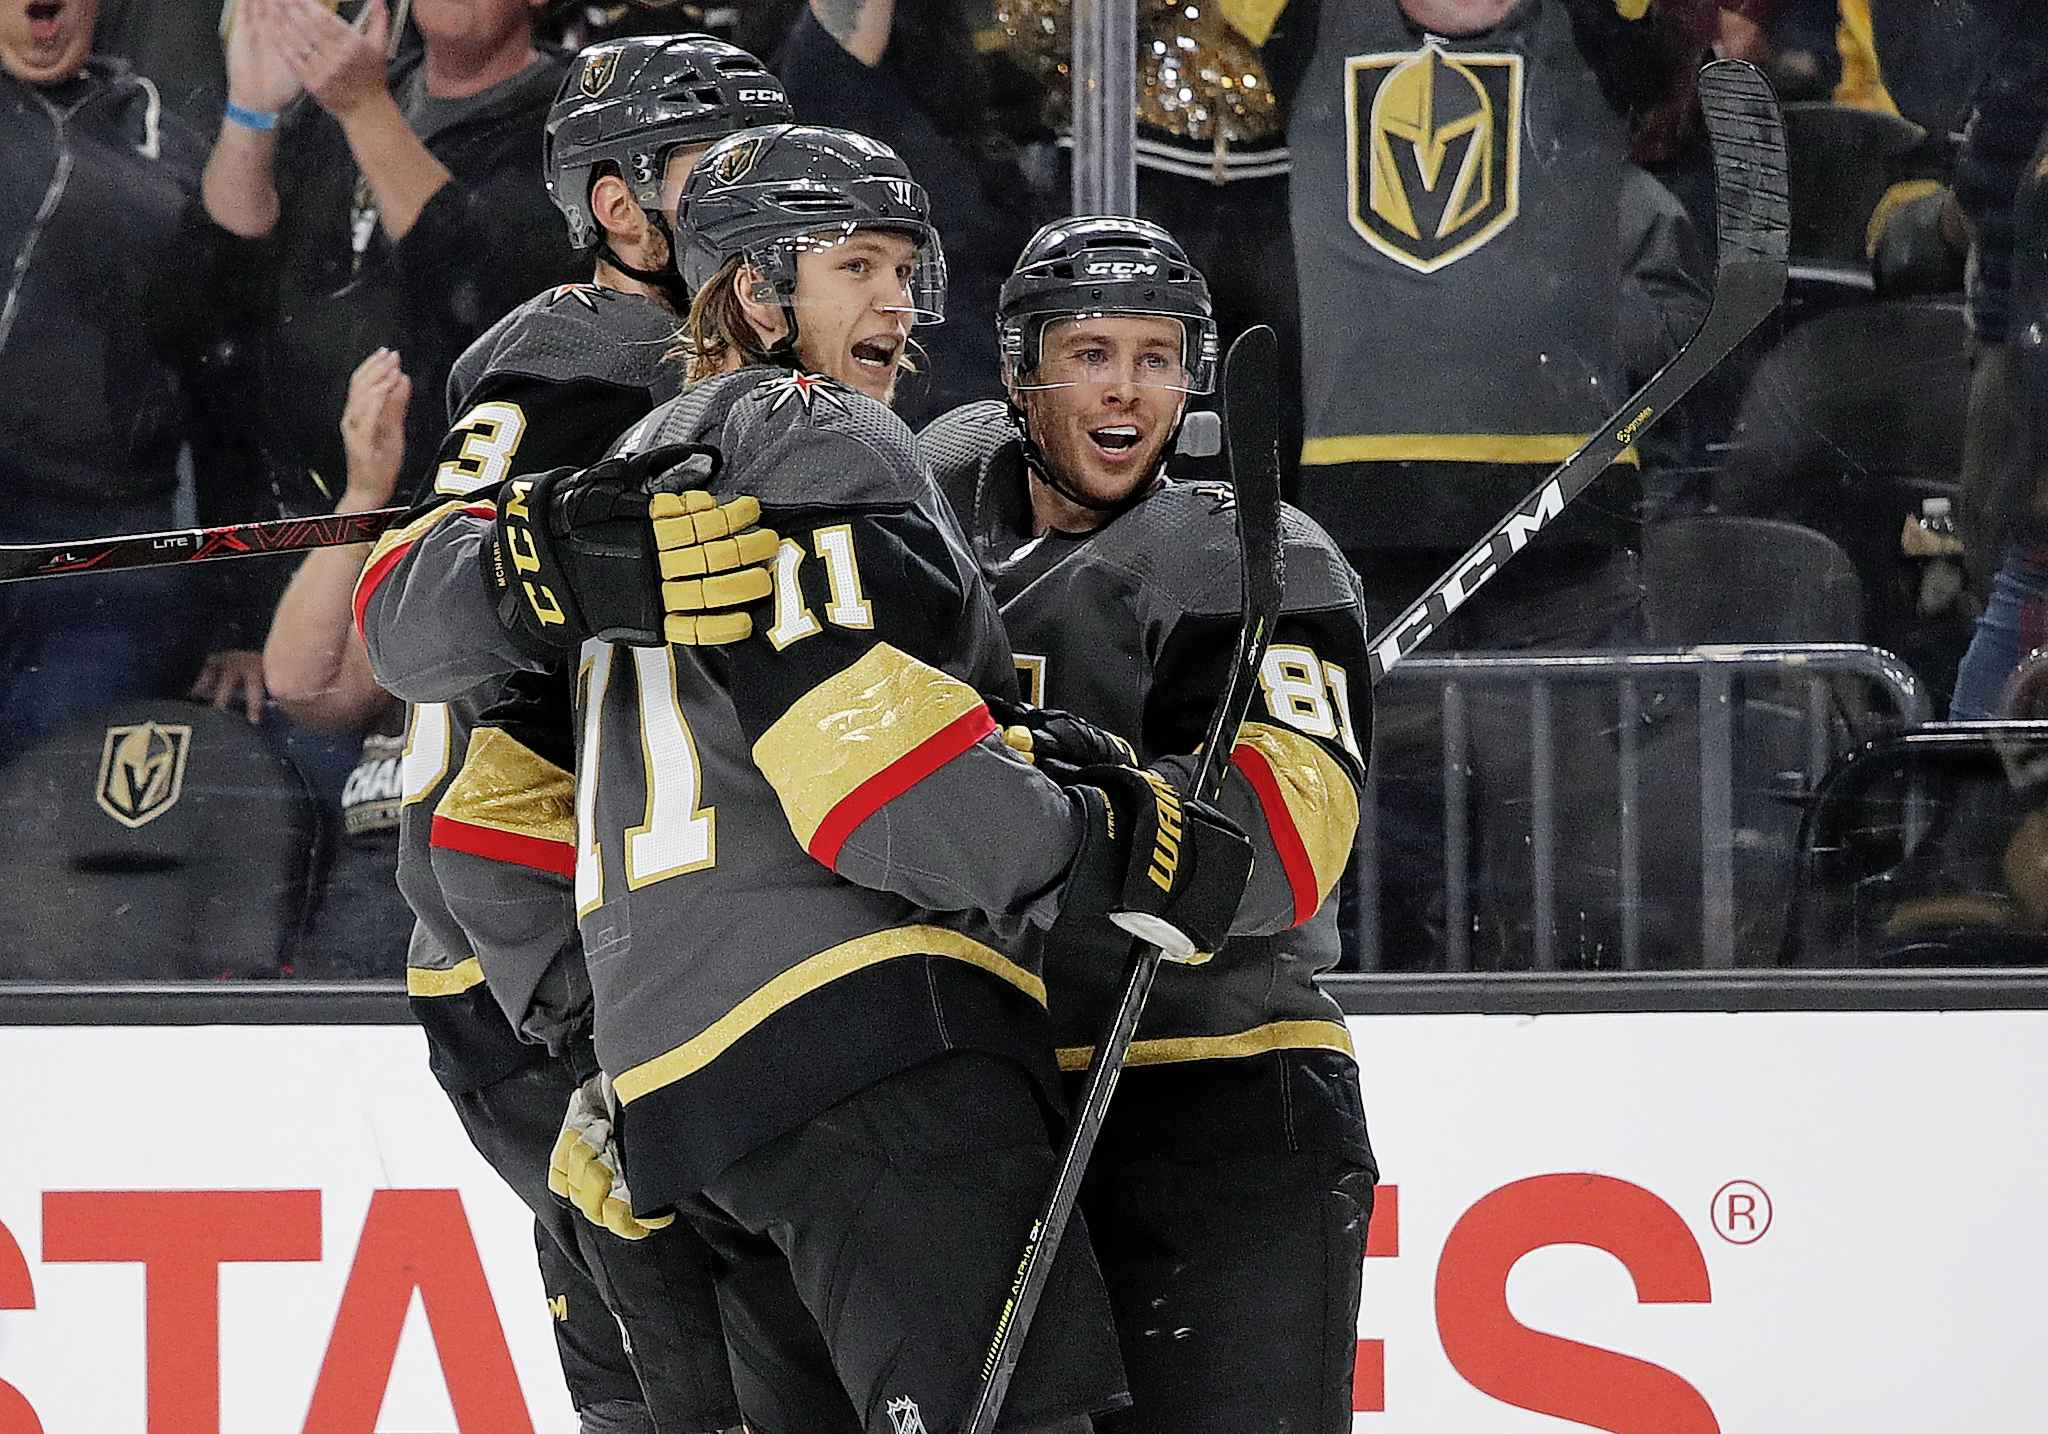 Vegas Golden Knights centre William Karlsson, middle, celebrates with teammates after scoring against the Winnipeg Jets during the second period.